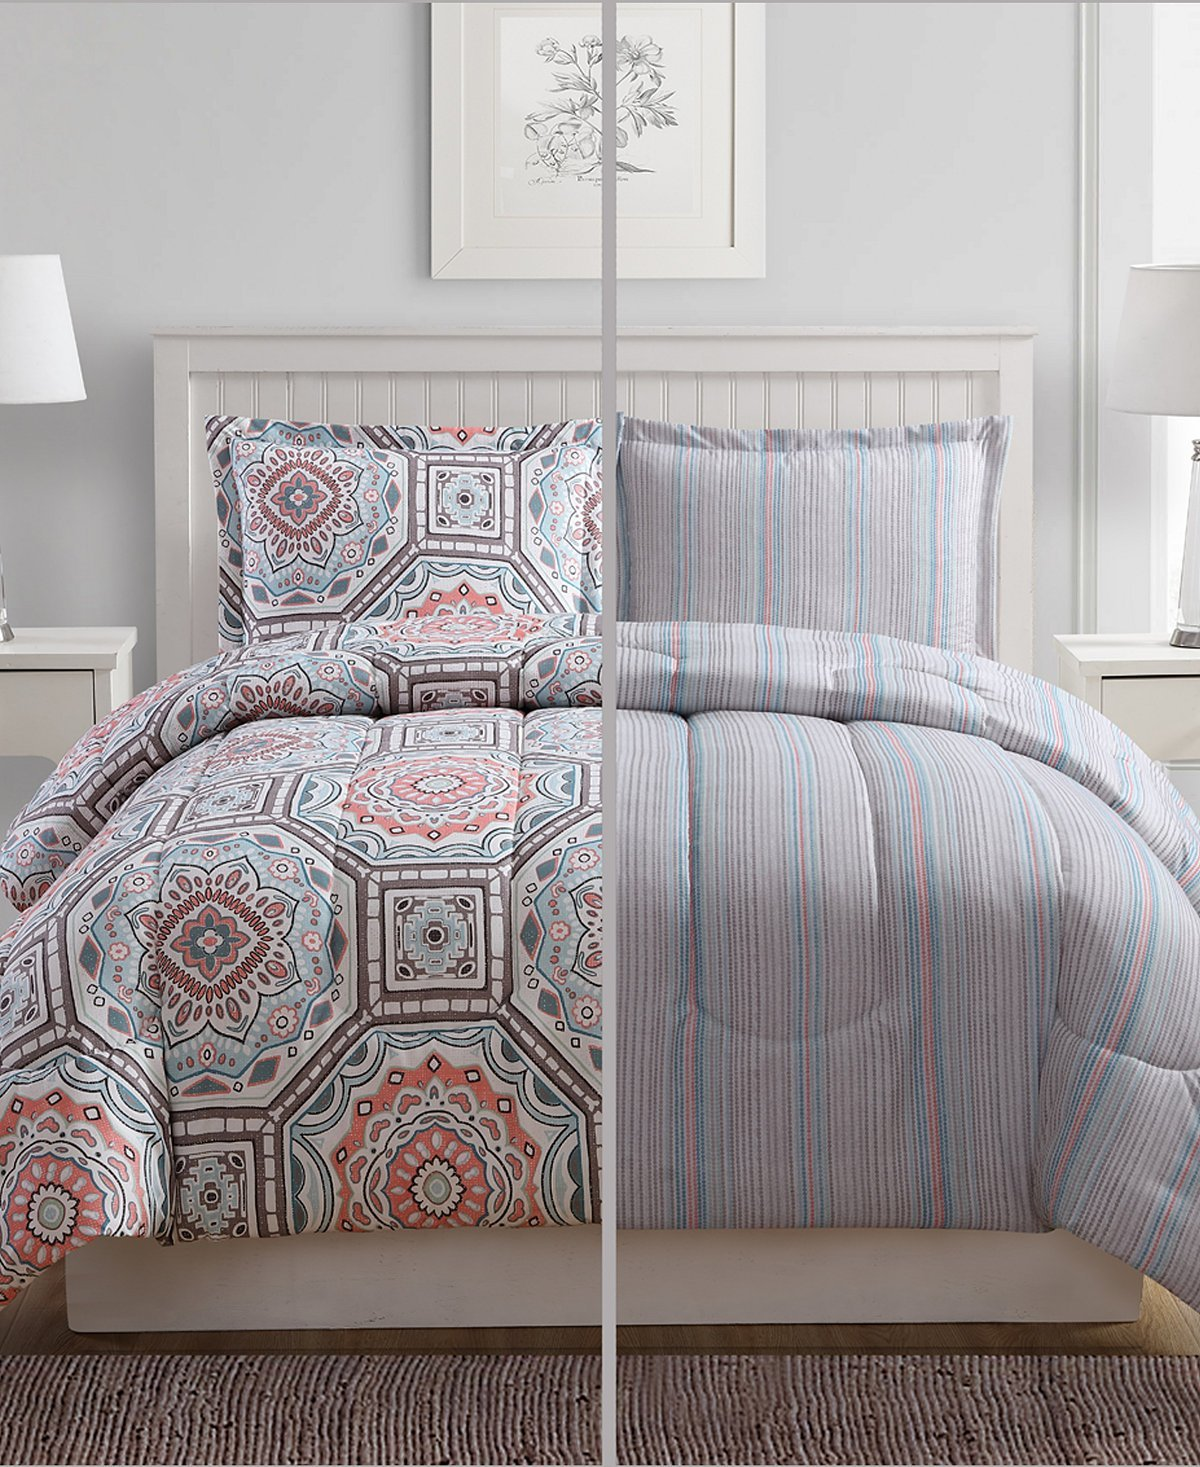 Best 3 Piece Bed Sets Are Just 20 At Macy S Dwym With Pictures Original 1024 x 768